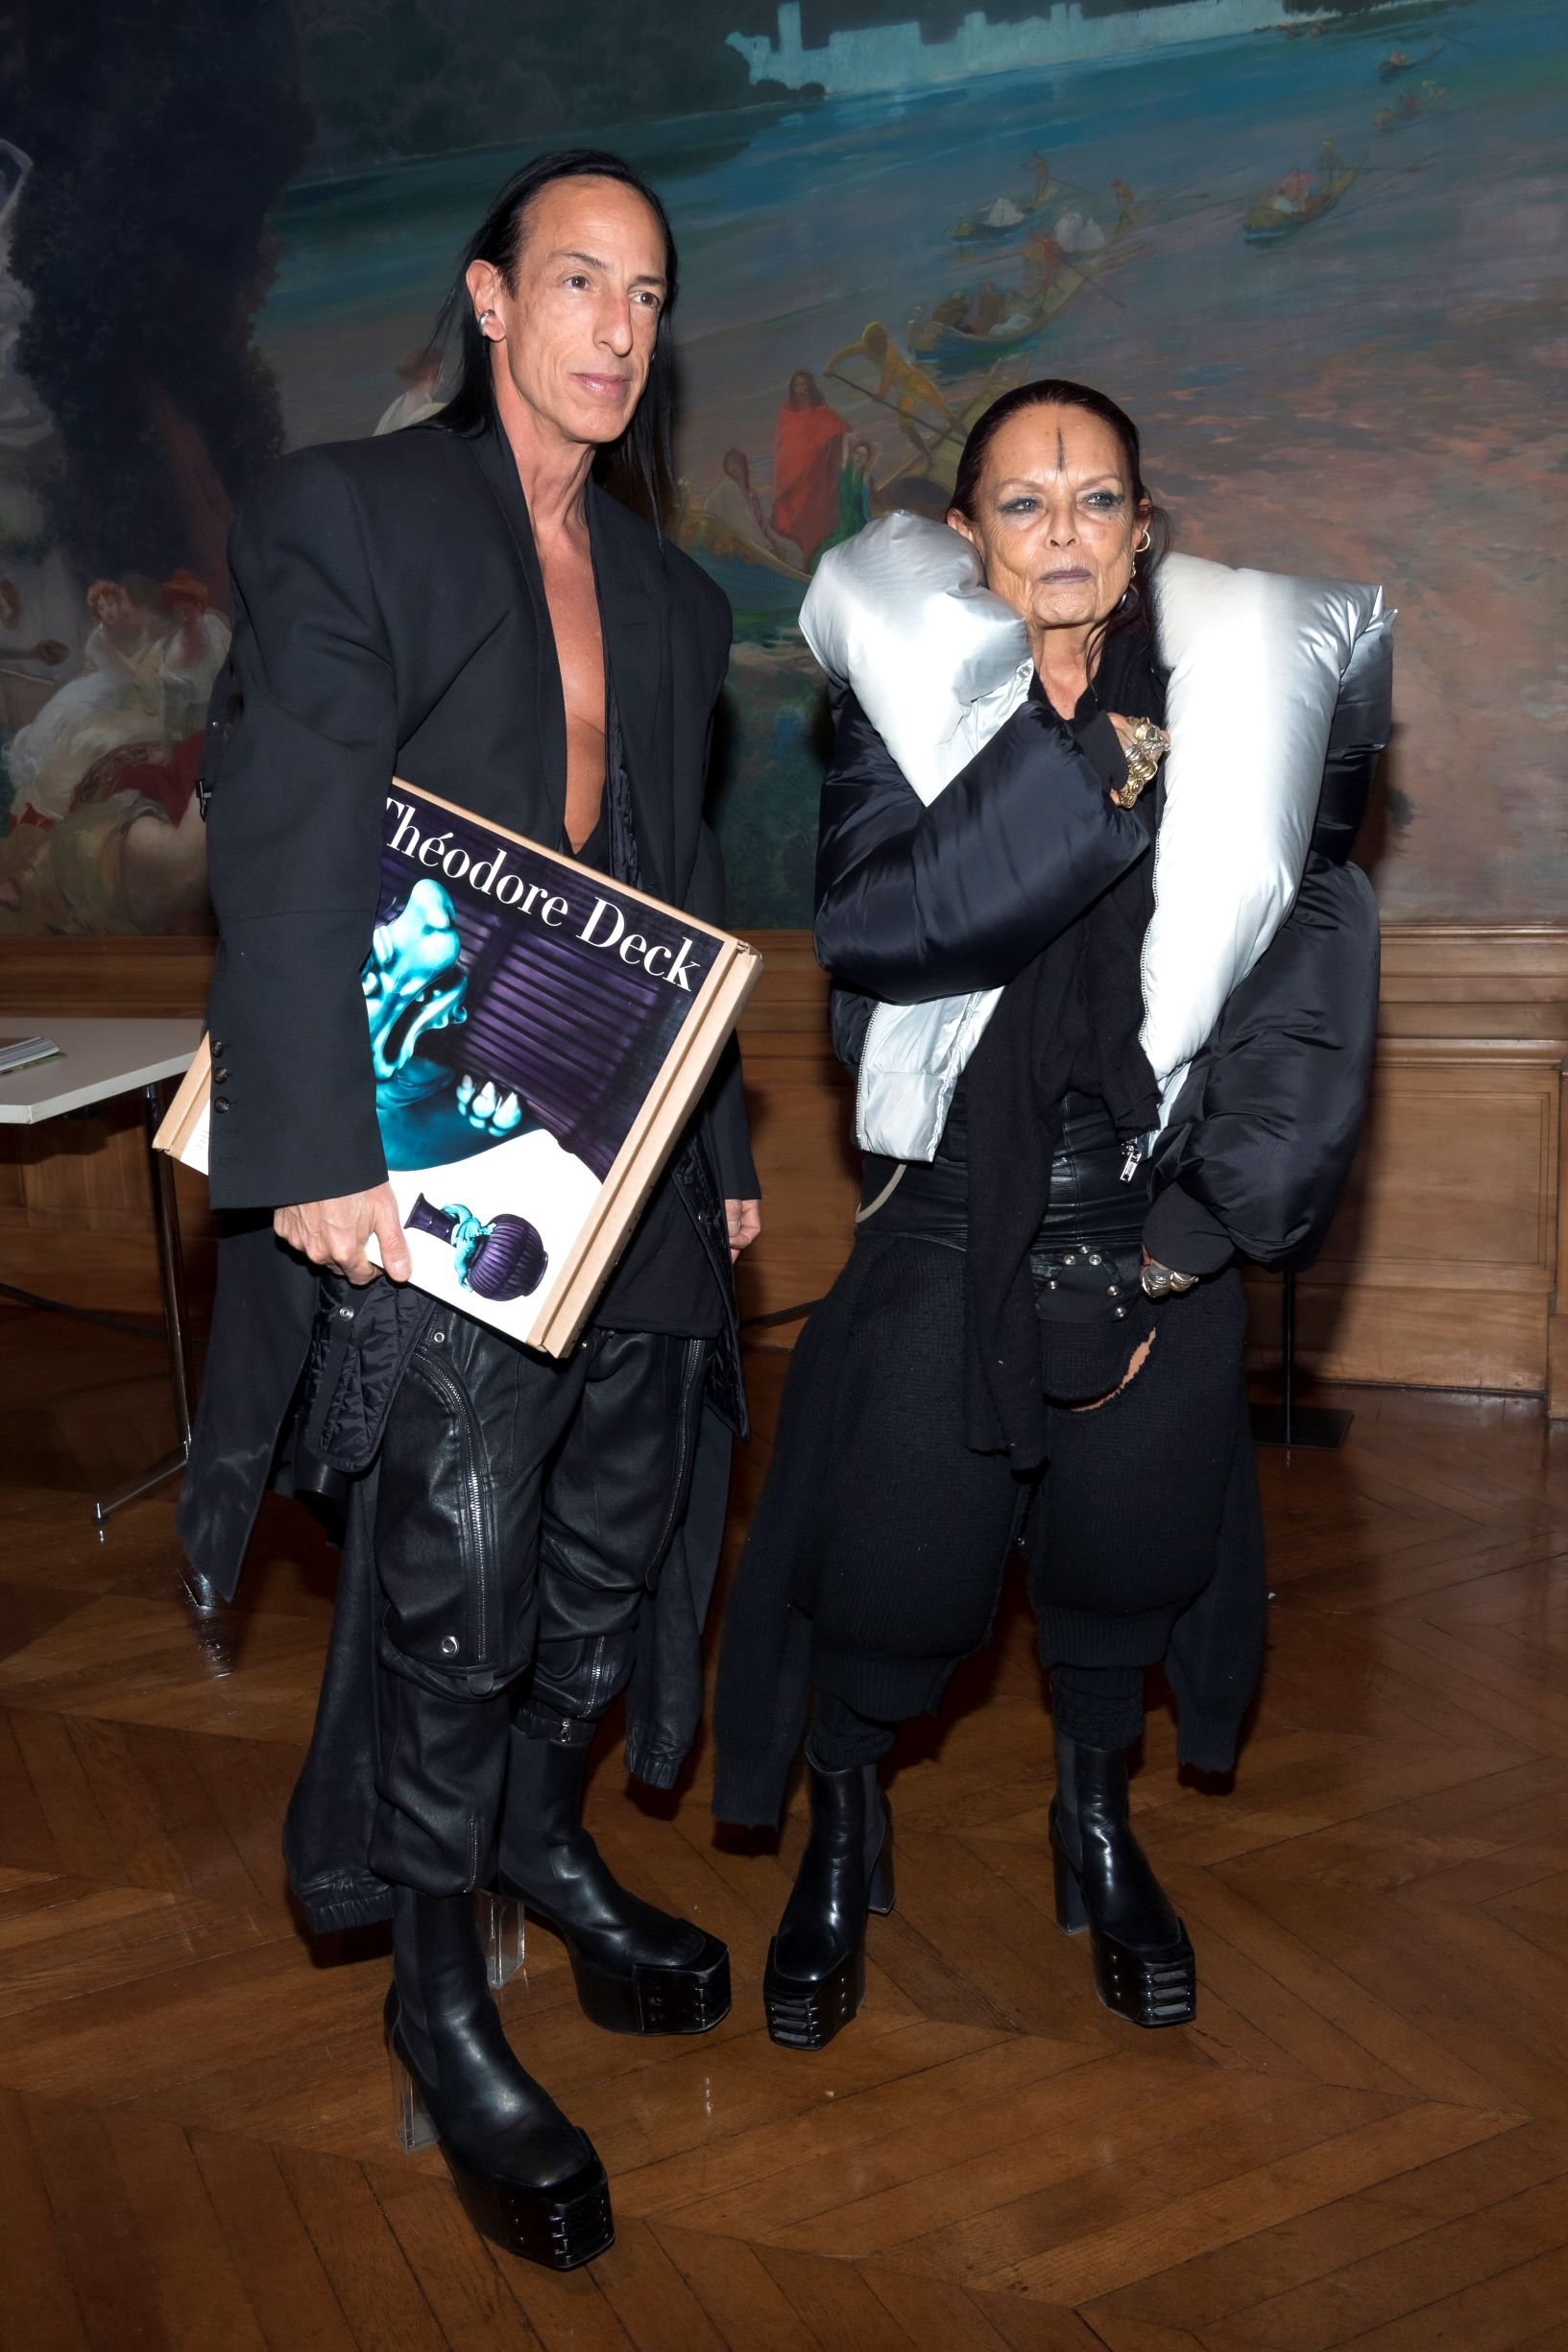 Rick Owens and Michèle Lamy at the Musée des Arts Décoratifs in Paris for Peter Marino's Théodore Deck book signing. Owens carries a copy of Théodore Deck. Photographs by Luc Castel